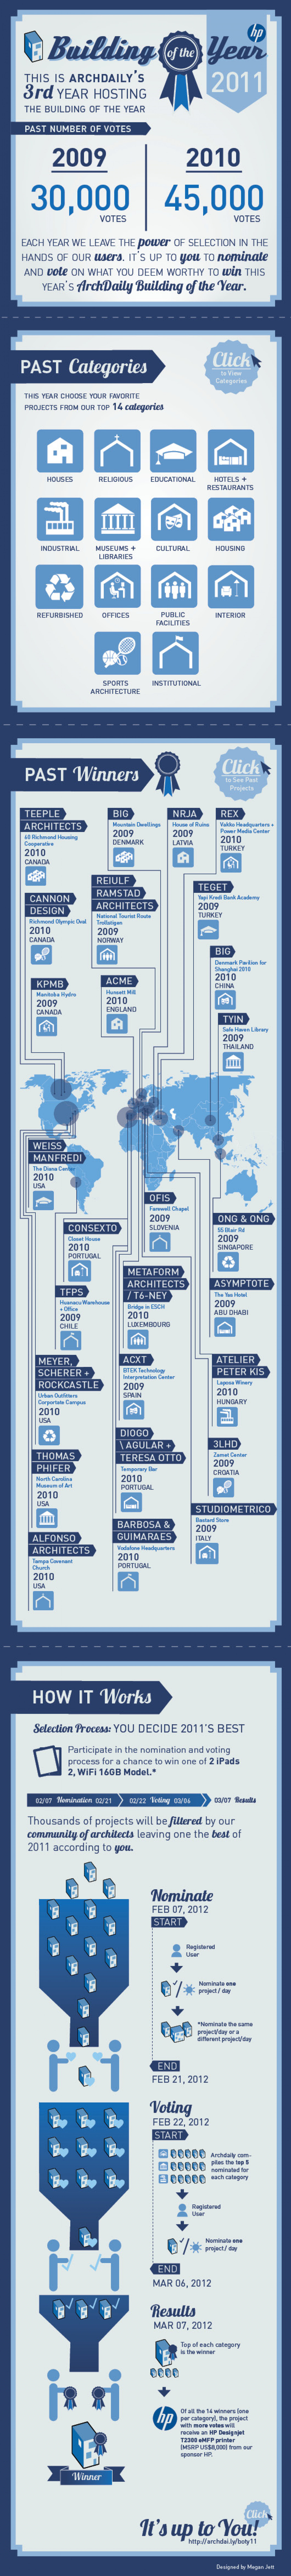 ArchDaily Building of the Year Awards Infographic